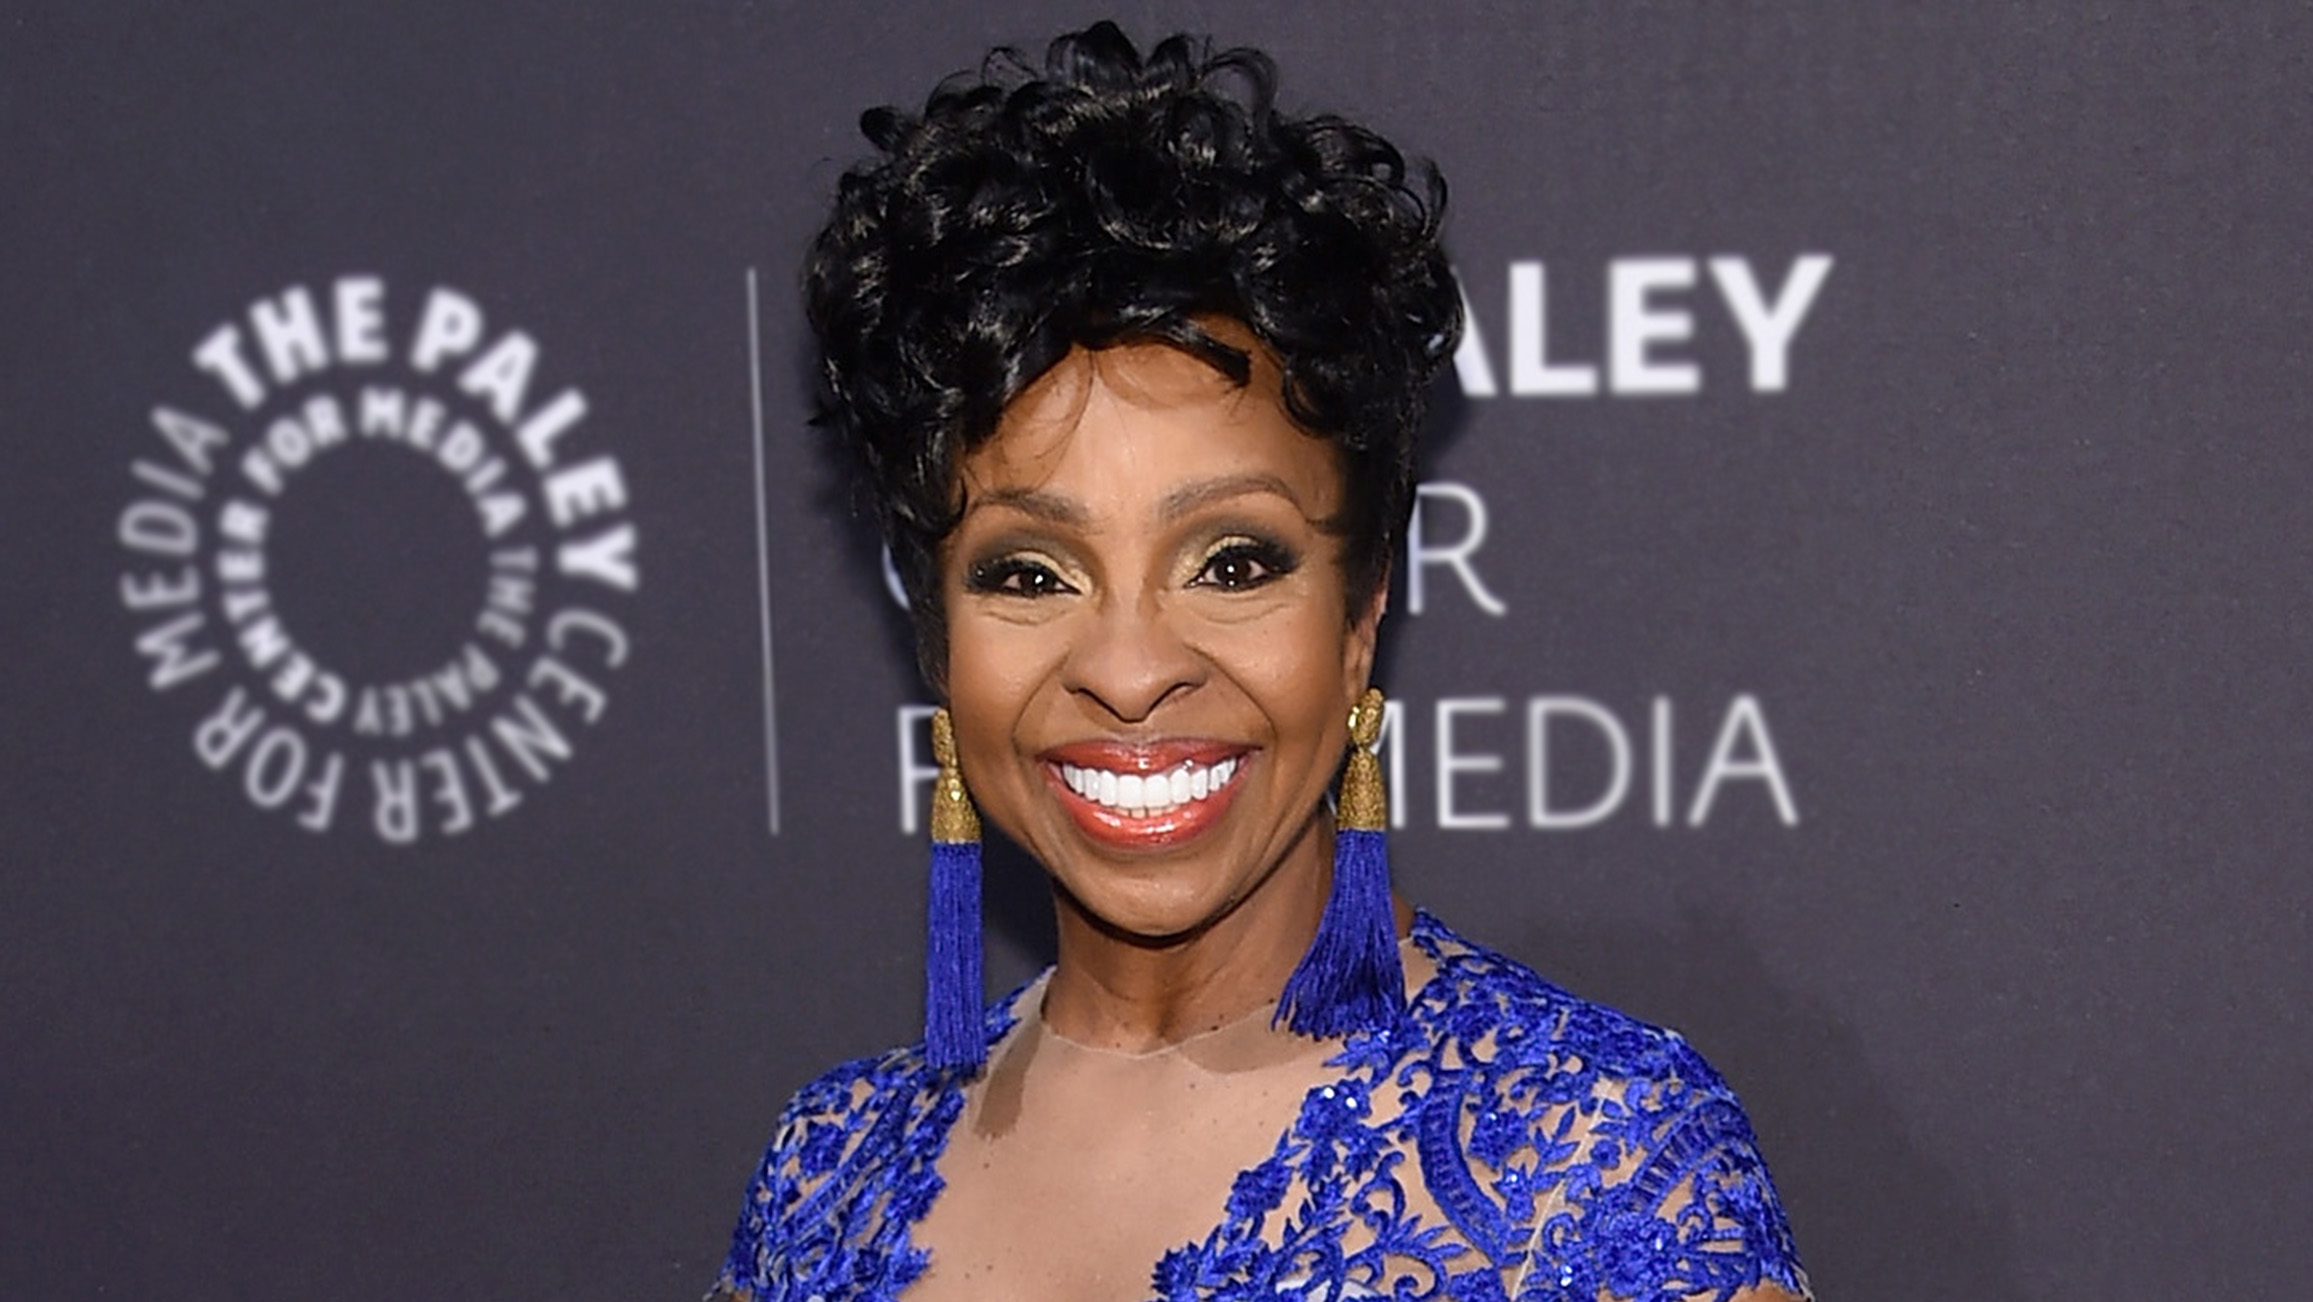 Gladys Knight Reveals She 'Had the same disease as Aretha Franklin'